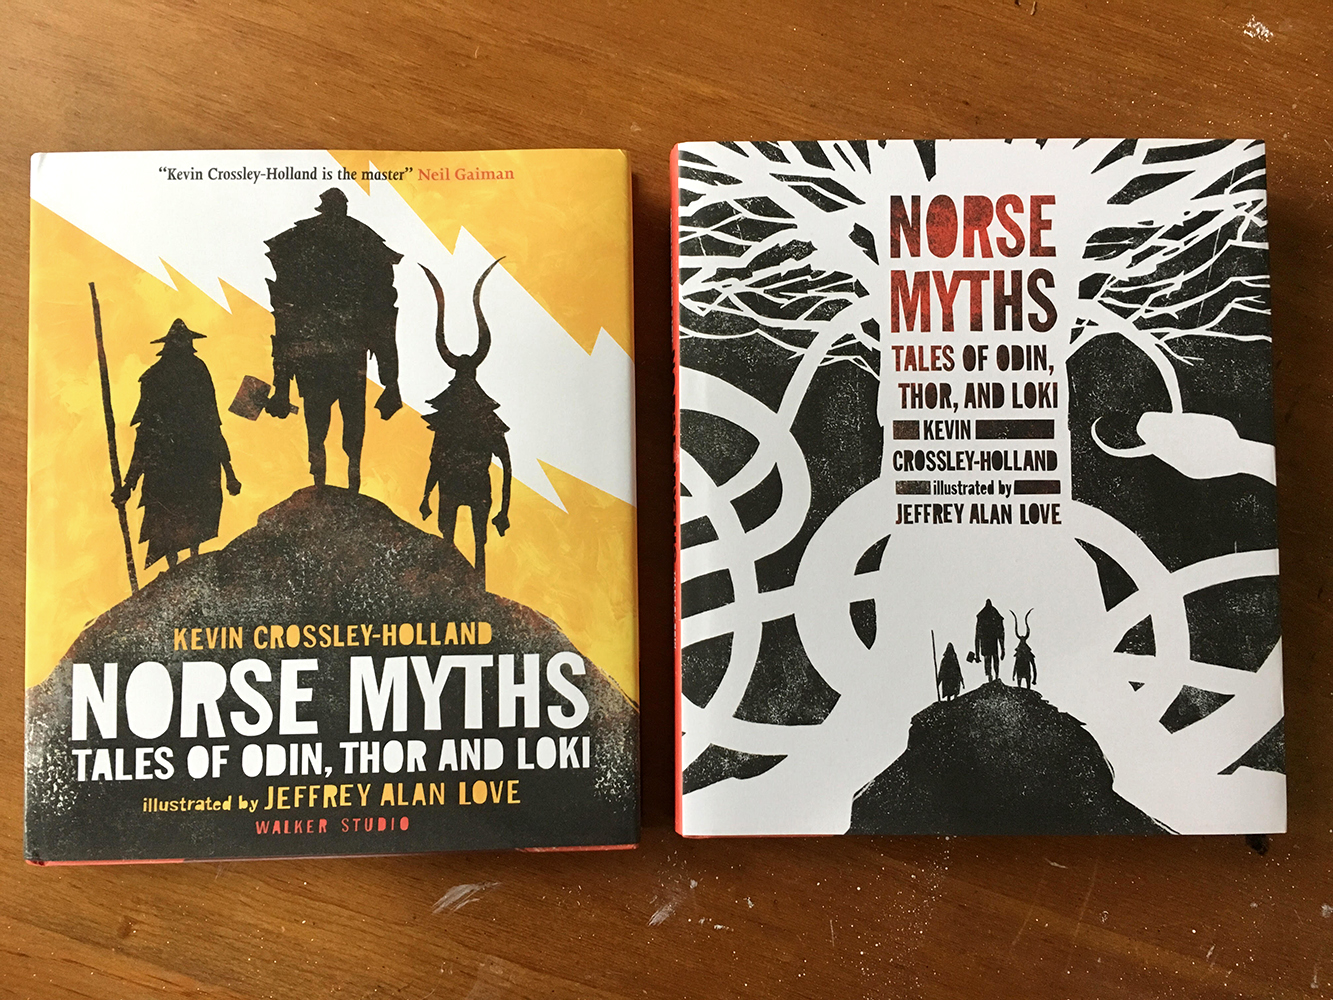 NORSE MYTHS: TALES OF ODIN, THOR, AND LOKI by Kevin Crossley-Holland. Over 150 paintings, fully illustrated.